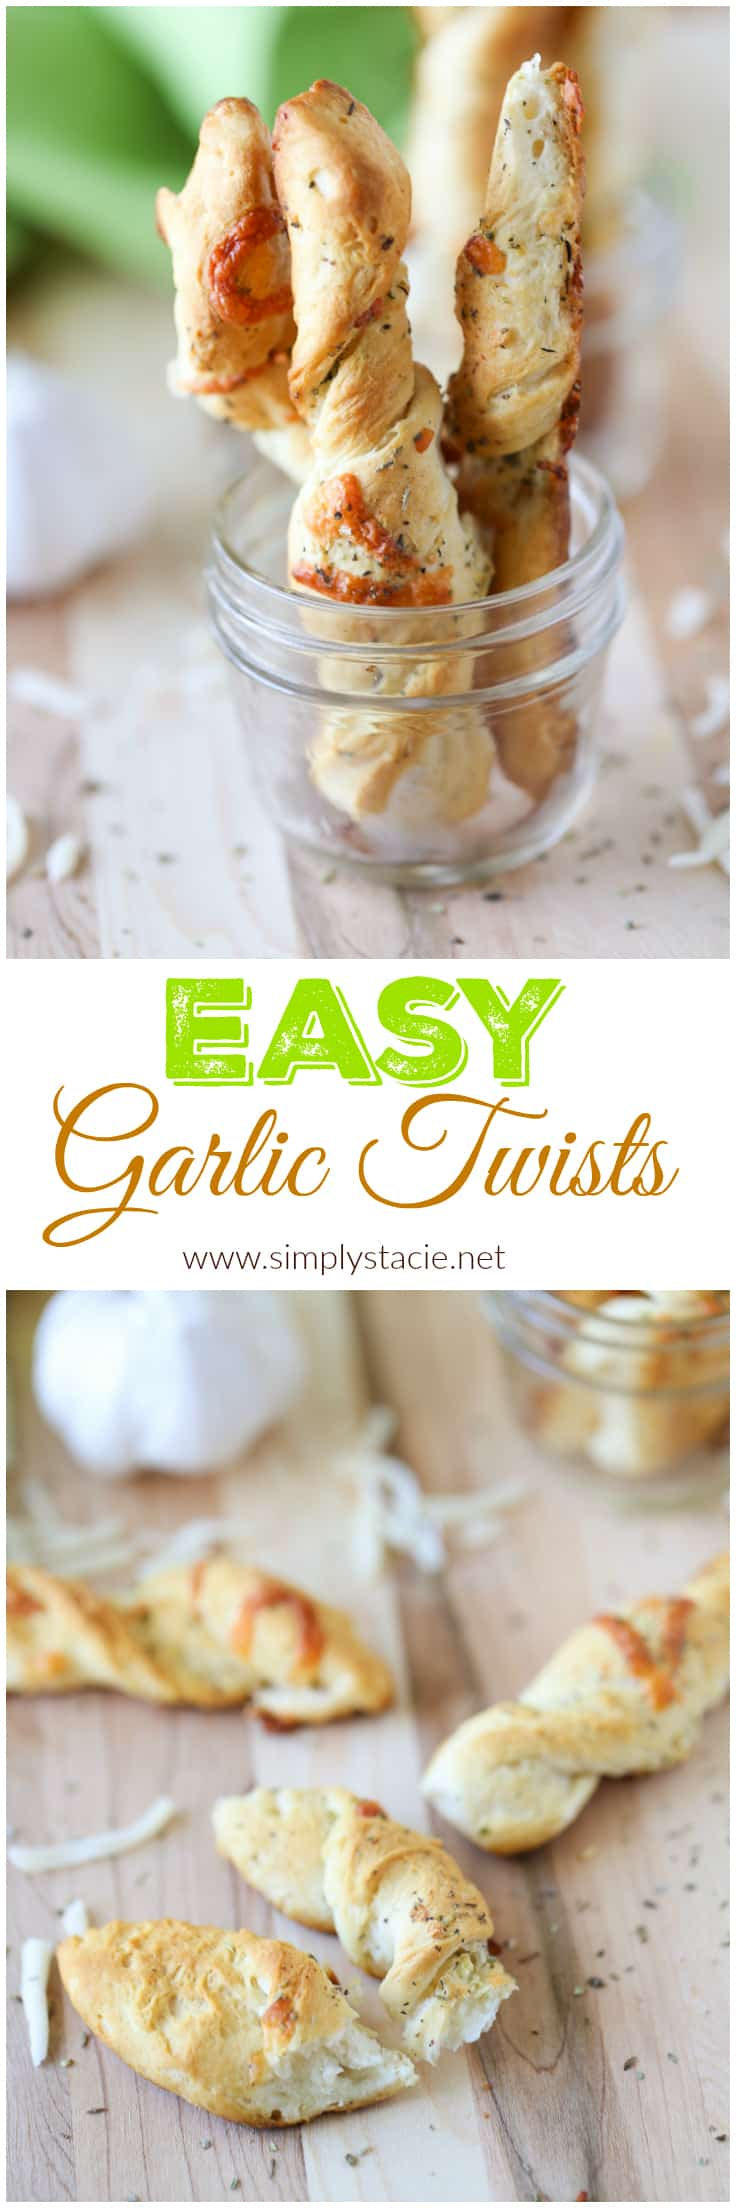 Easy Garlic Twists - This delicious recipe is a crowd favourite with only a few ingredients! Use refrigerated biscuits to save time. | simplystacie.net